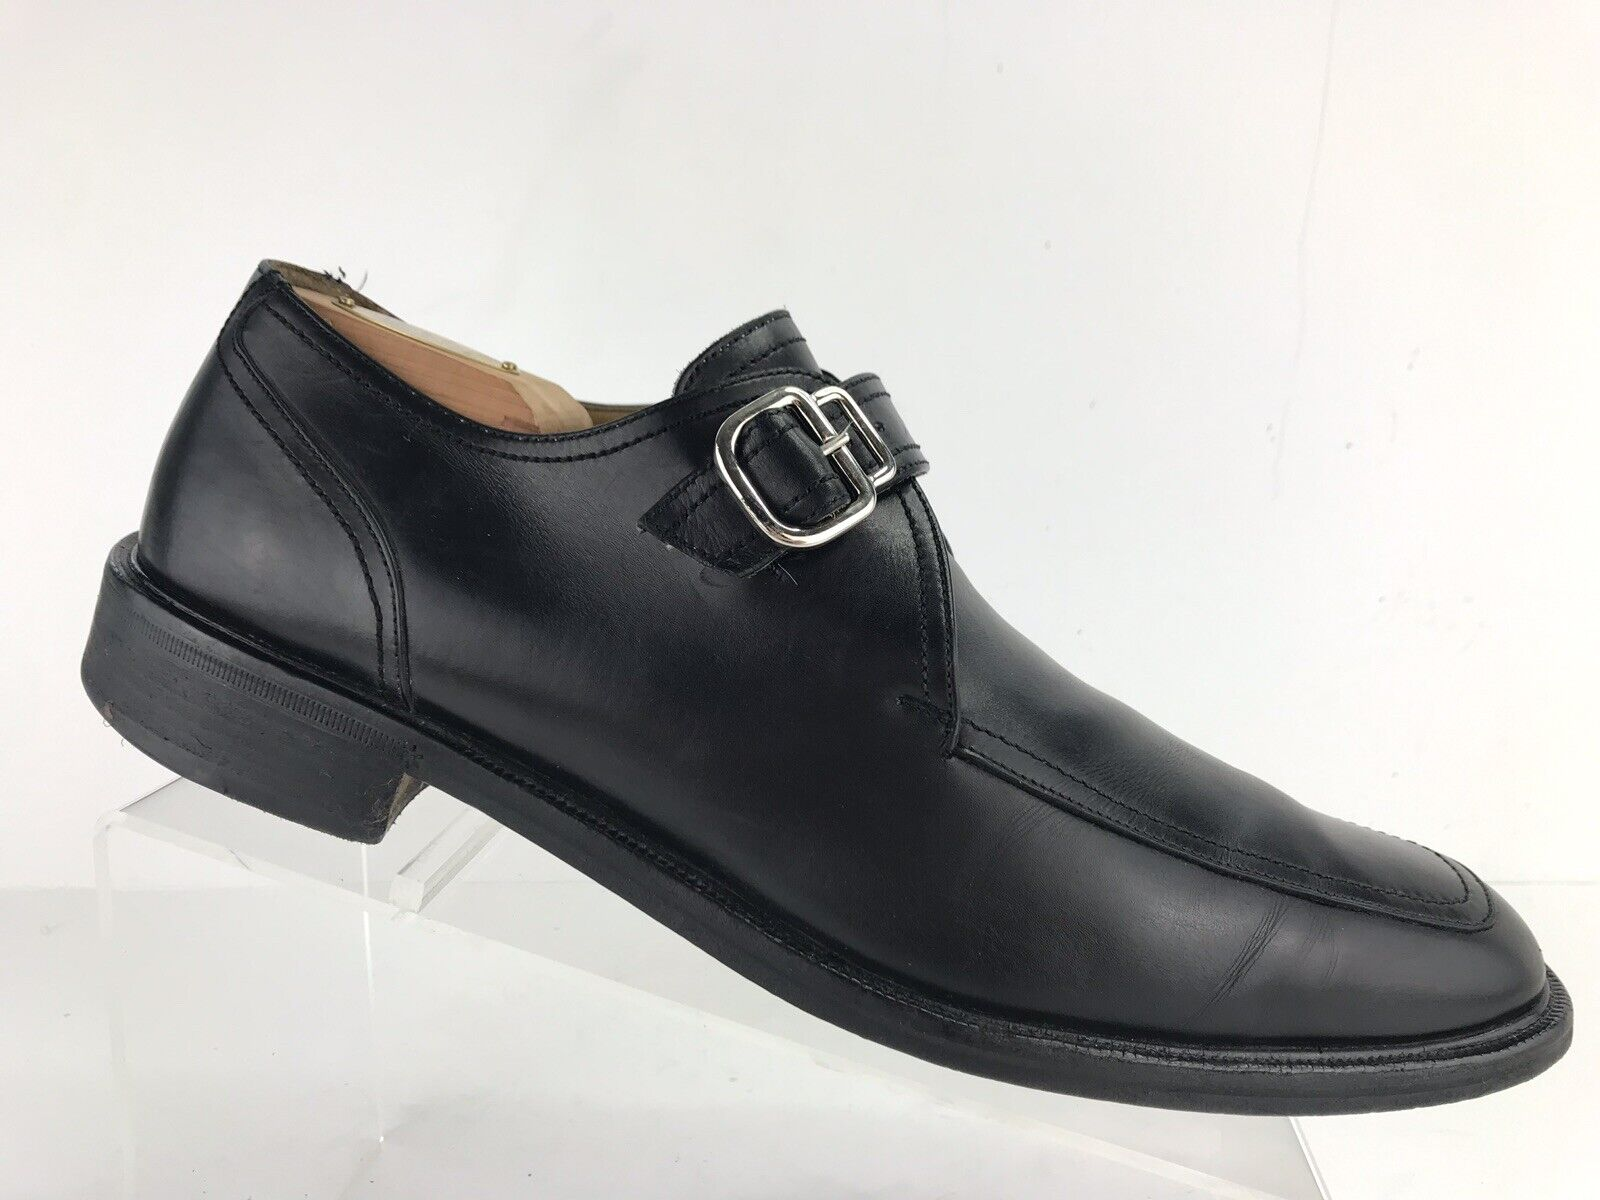 Cole Haan Black Leather Monk Strap Made in  Dress shoes Men's 10.5 M